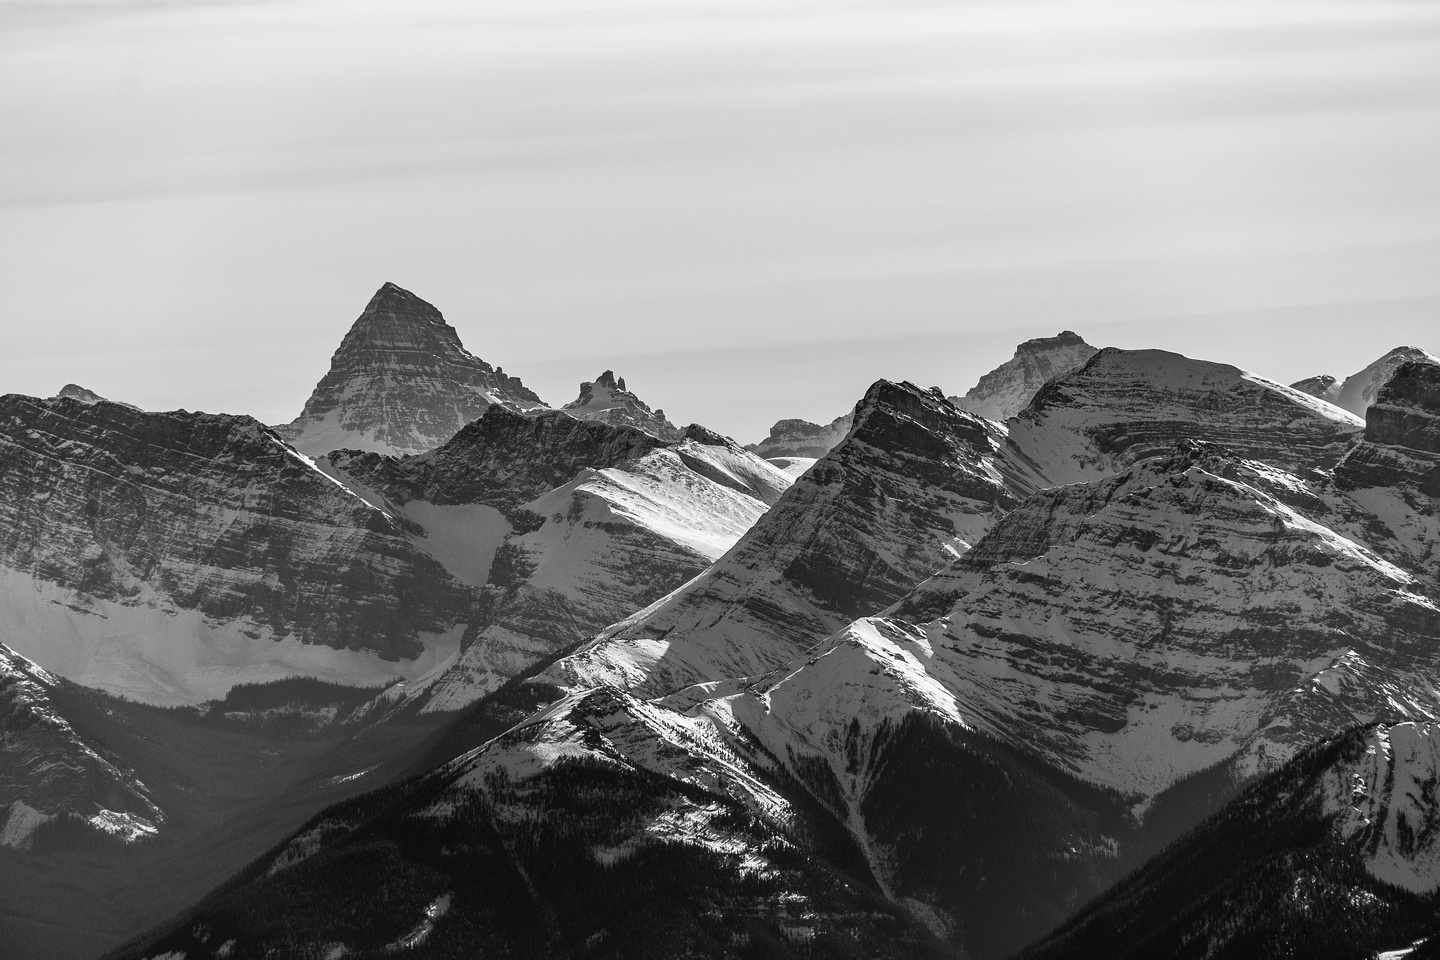 Assiniboine with Eagle at right.